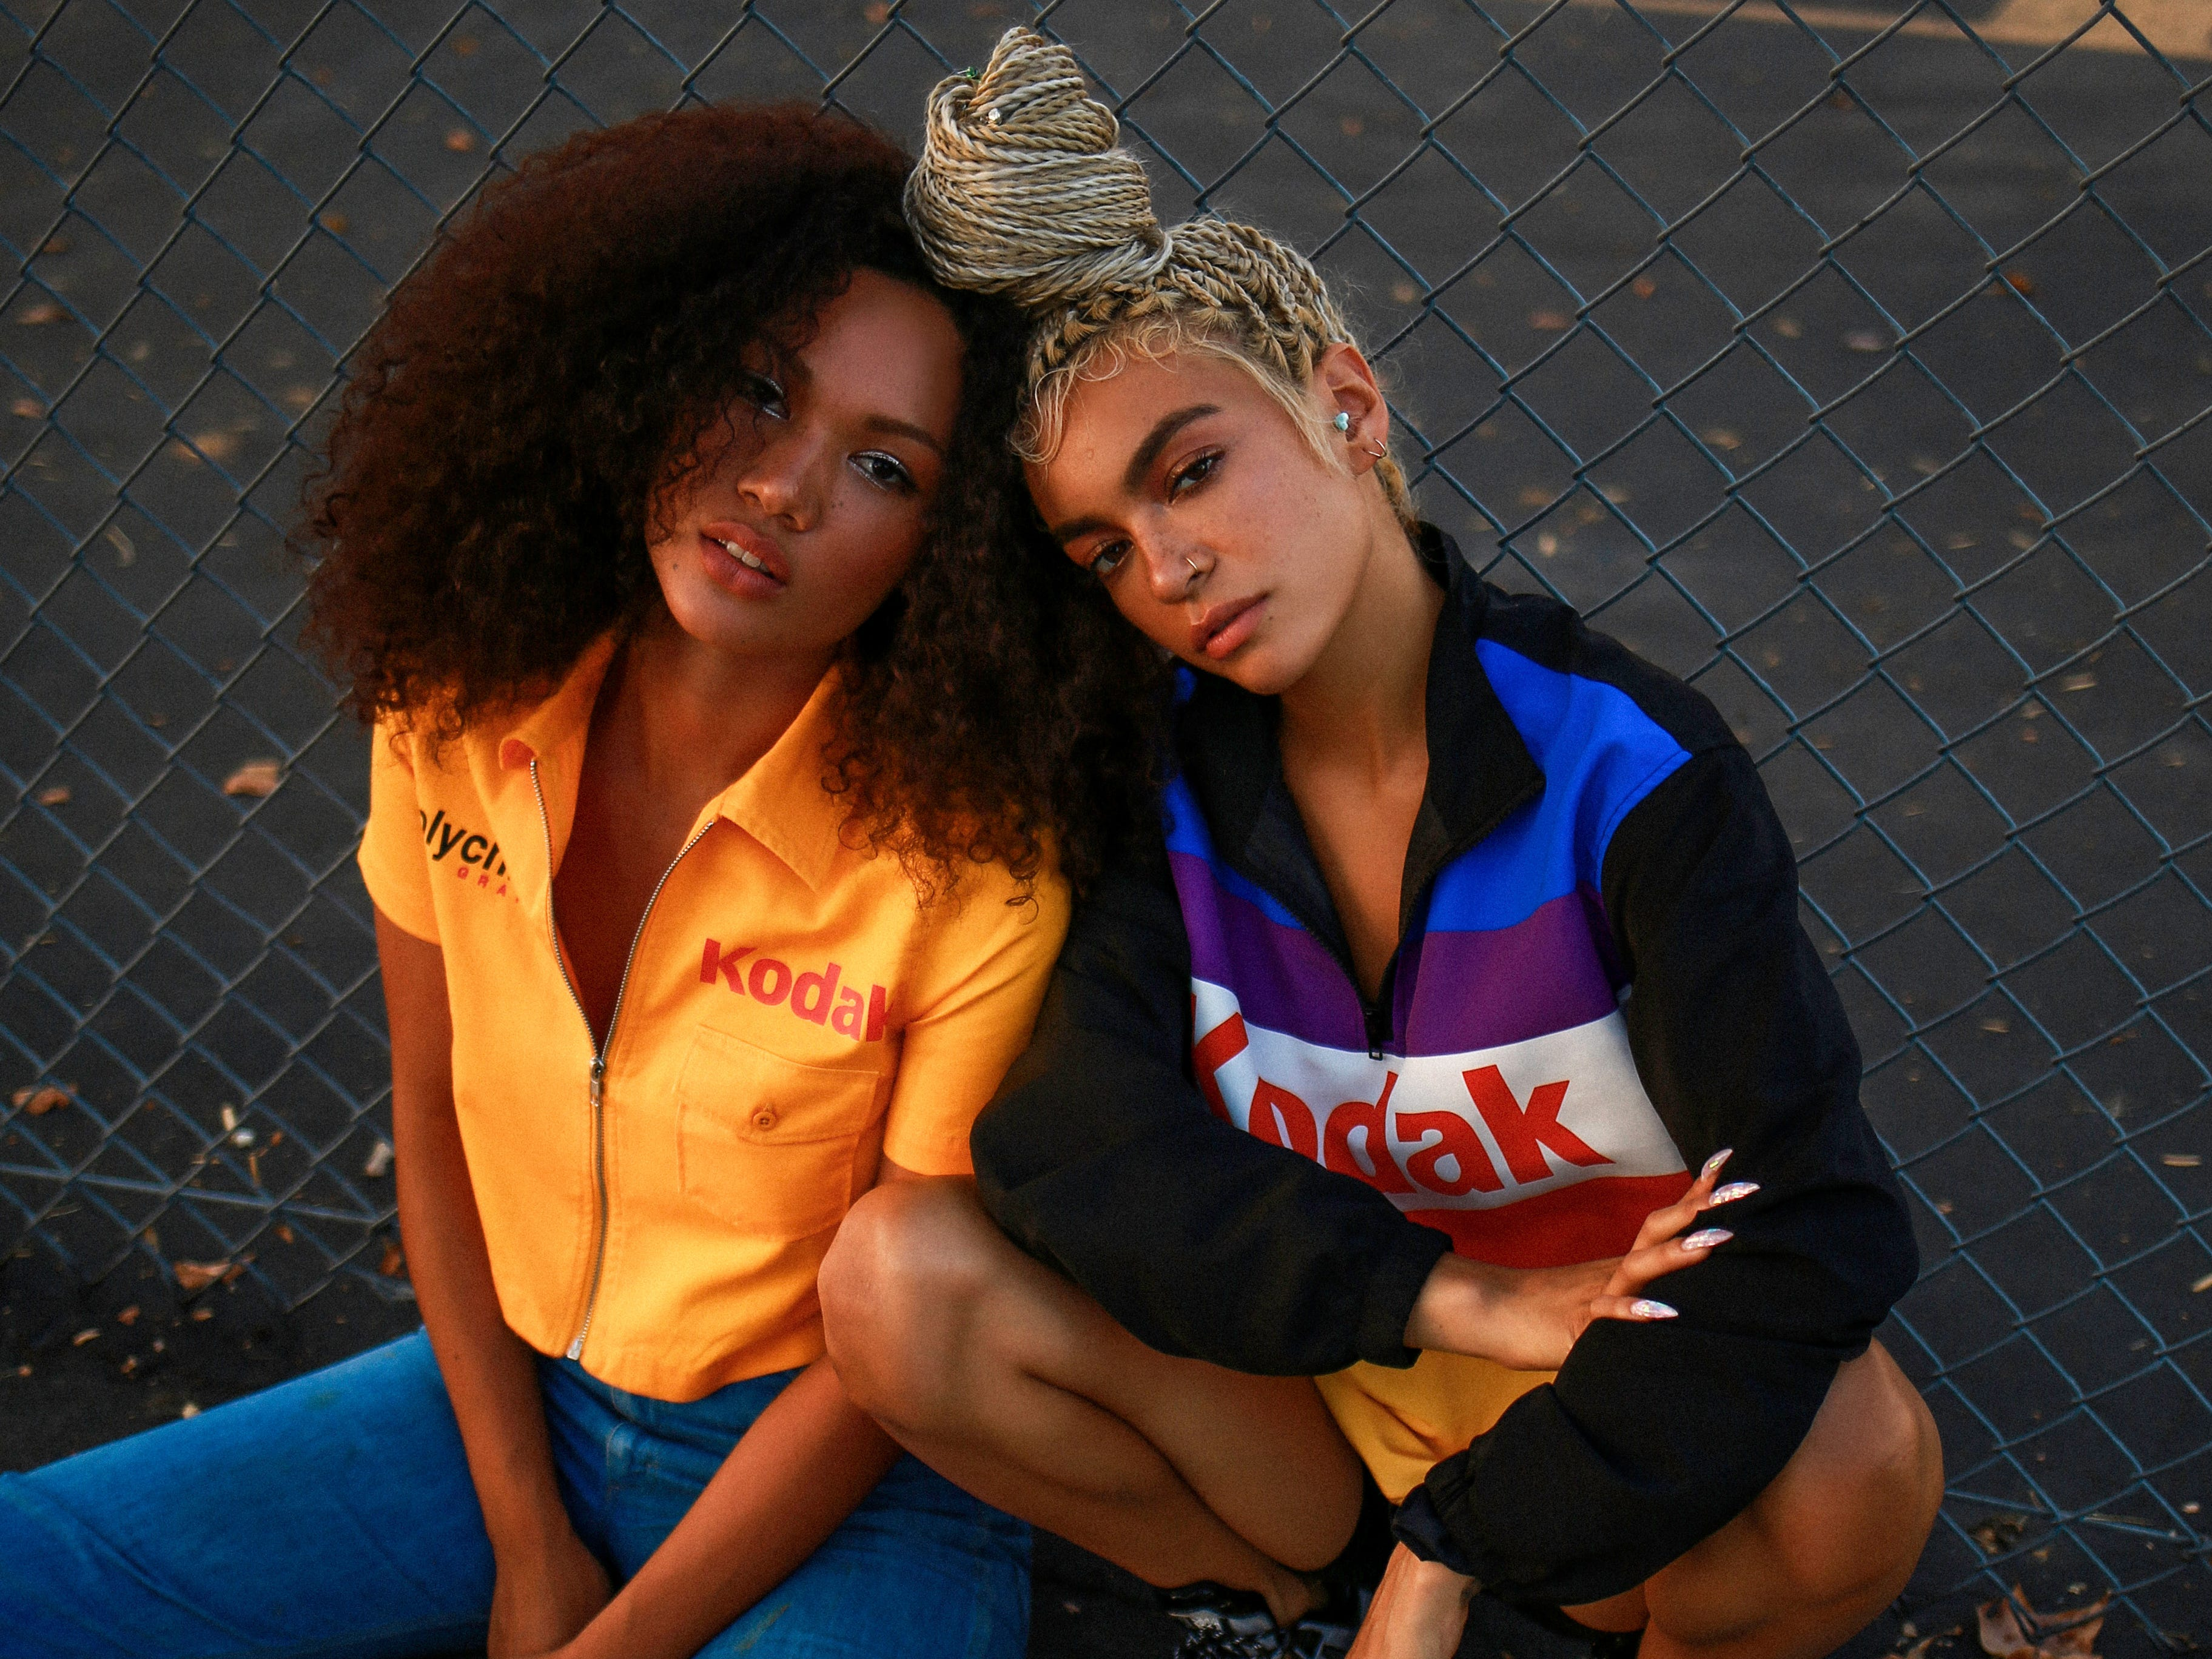 Kodak's new fashion line with Forever 21 features colorful graphics